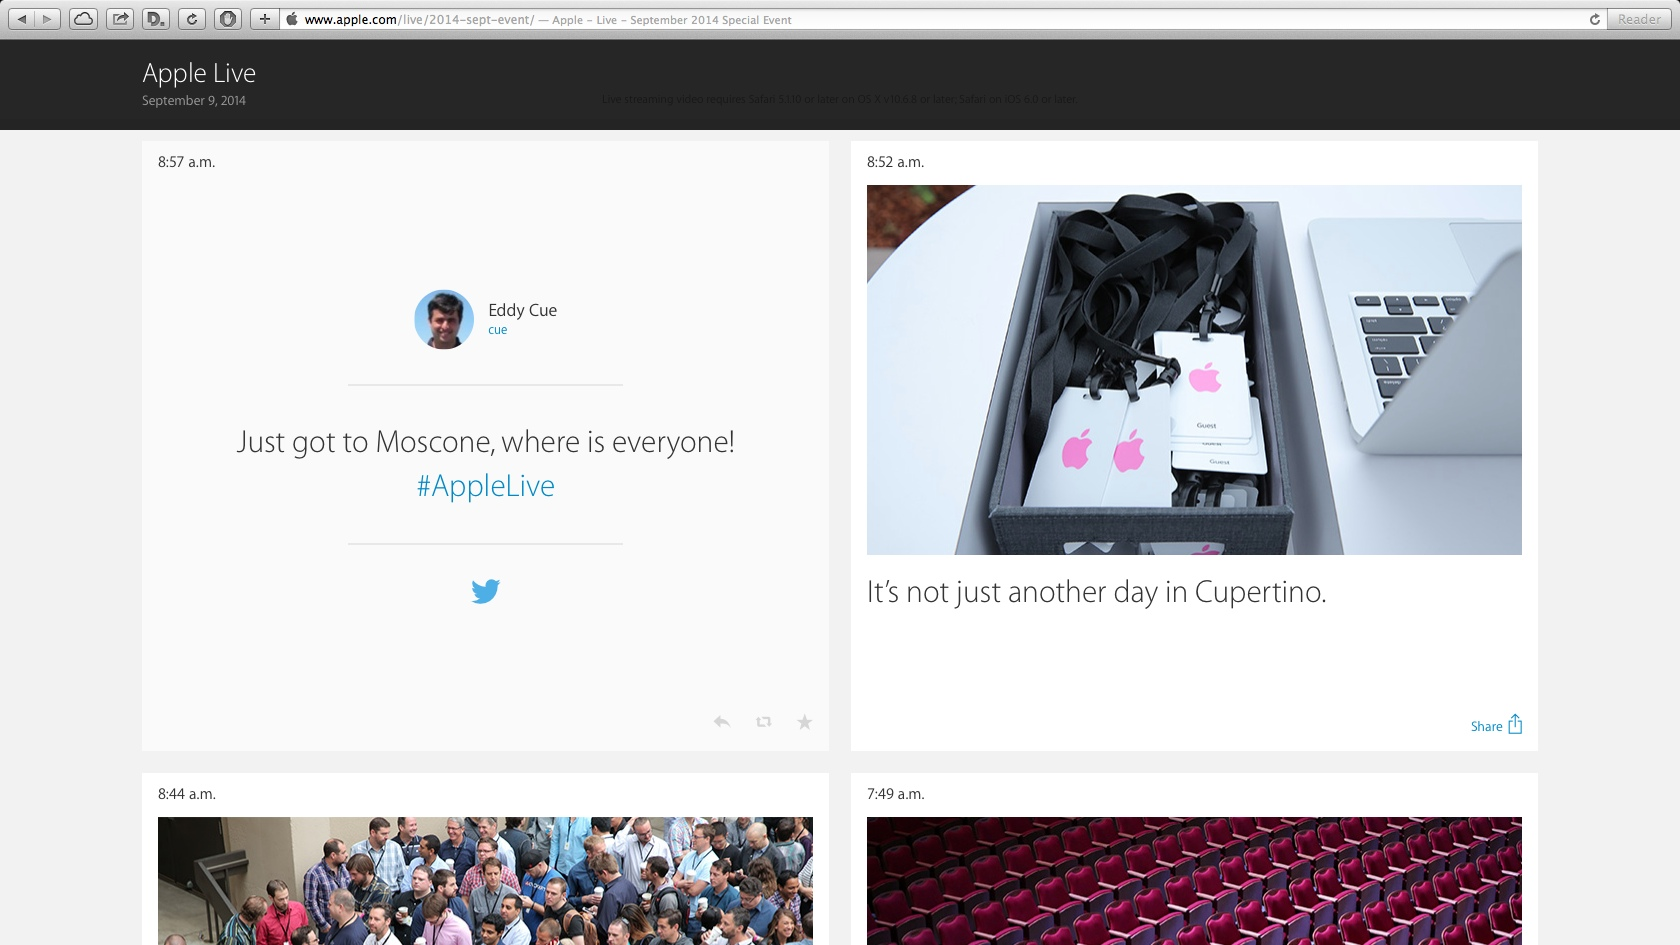 Apple Special Event Live Update 20140909 Appledotcom